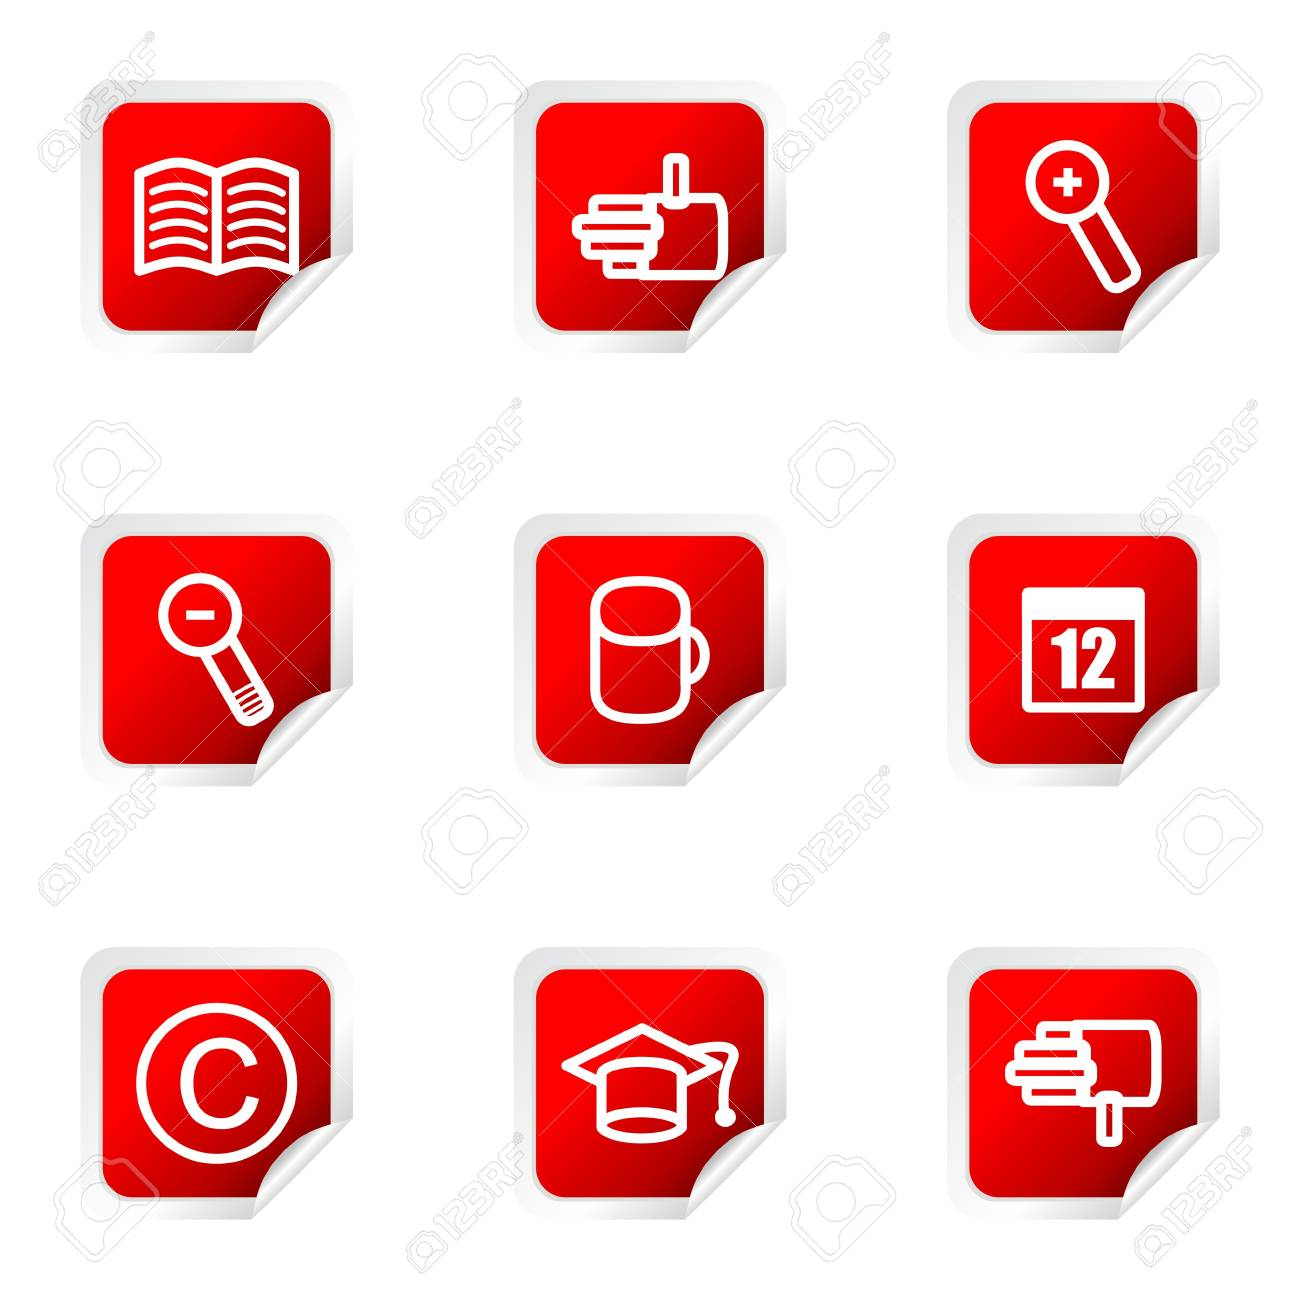 Set of 9 glossy web icons (set 20). Red square with corner. Stock Vector - 16710710